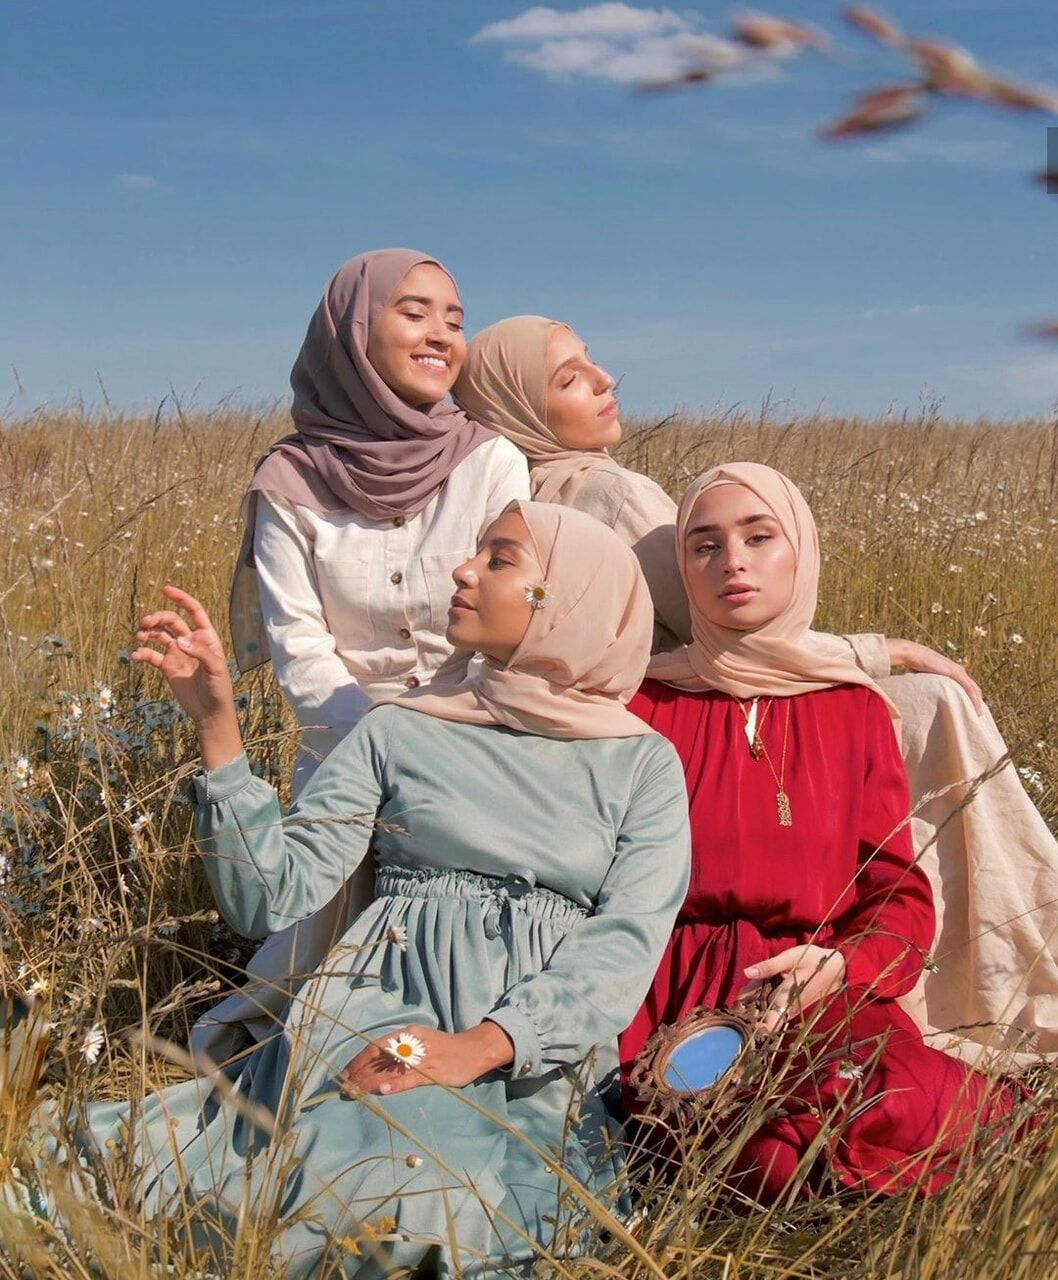 Instagram Hananalbadri Please Keep The Credits If You Repost This More Pictures Like This On My Beautiful Hijab Street Hijab Fashion Modern Hijab Fashion